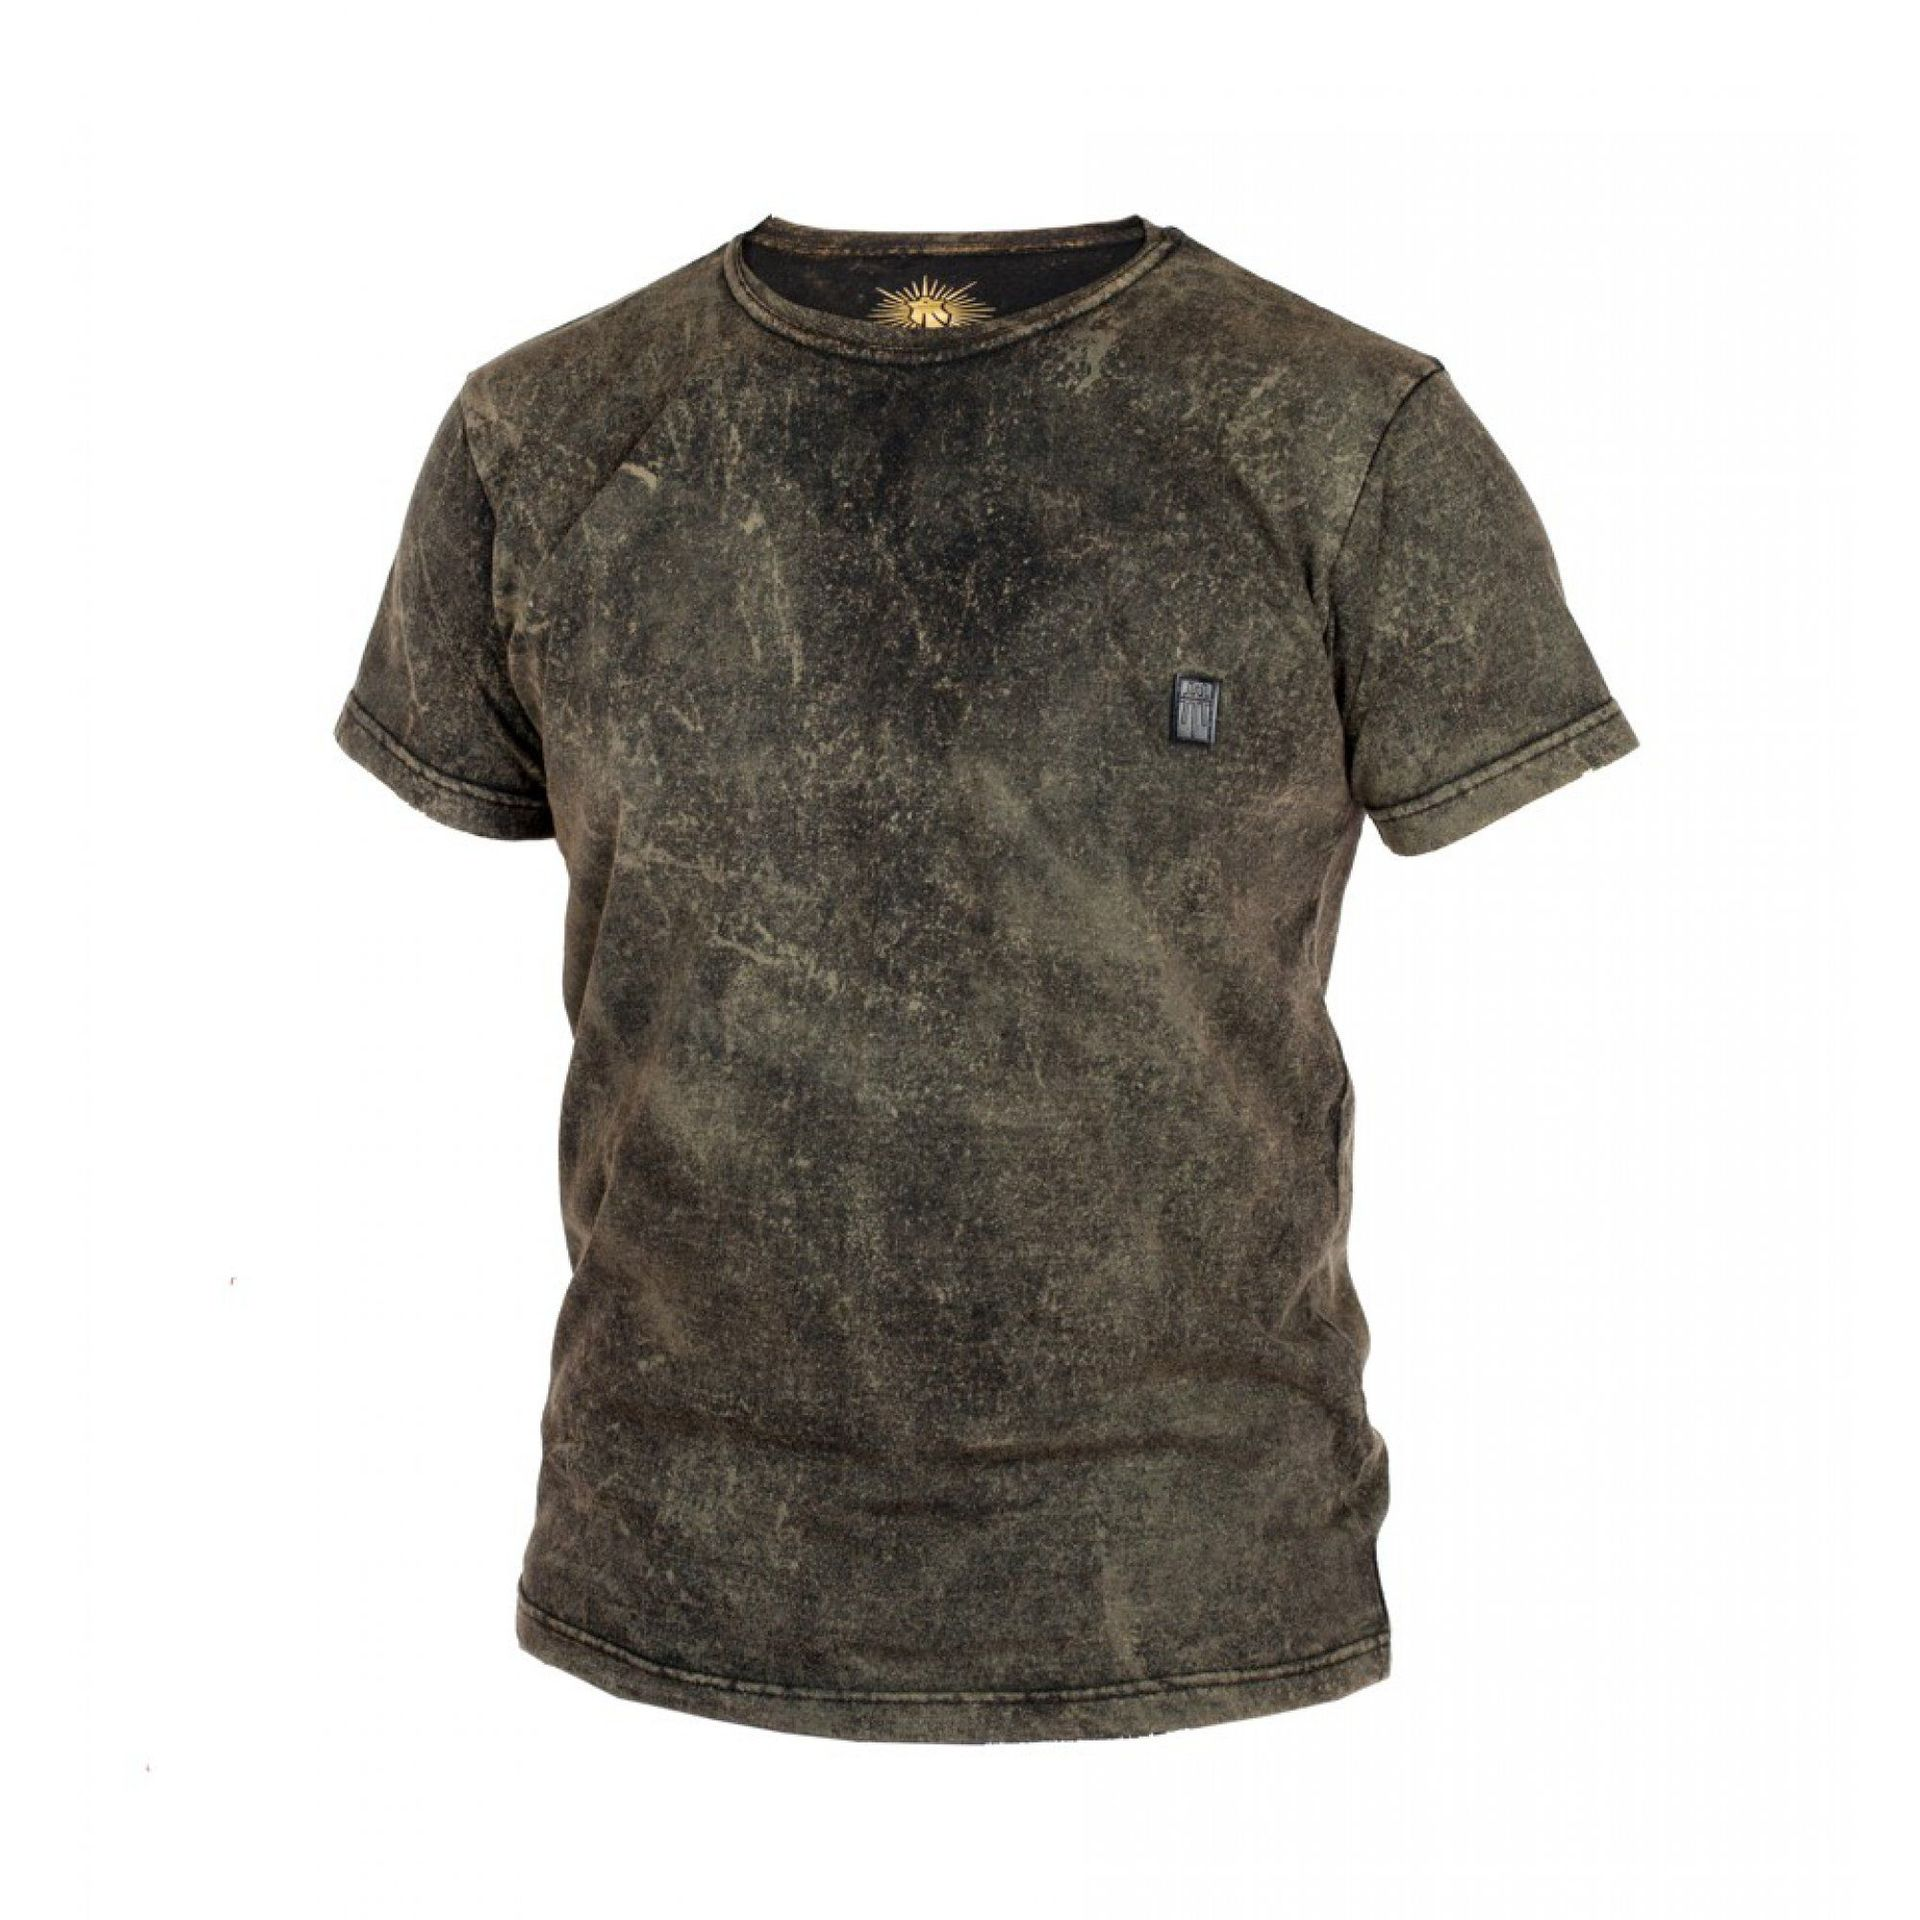 T-SHIRT MAJESTY CAFE RACER BLACK|STAIN